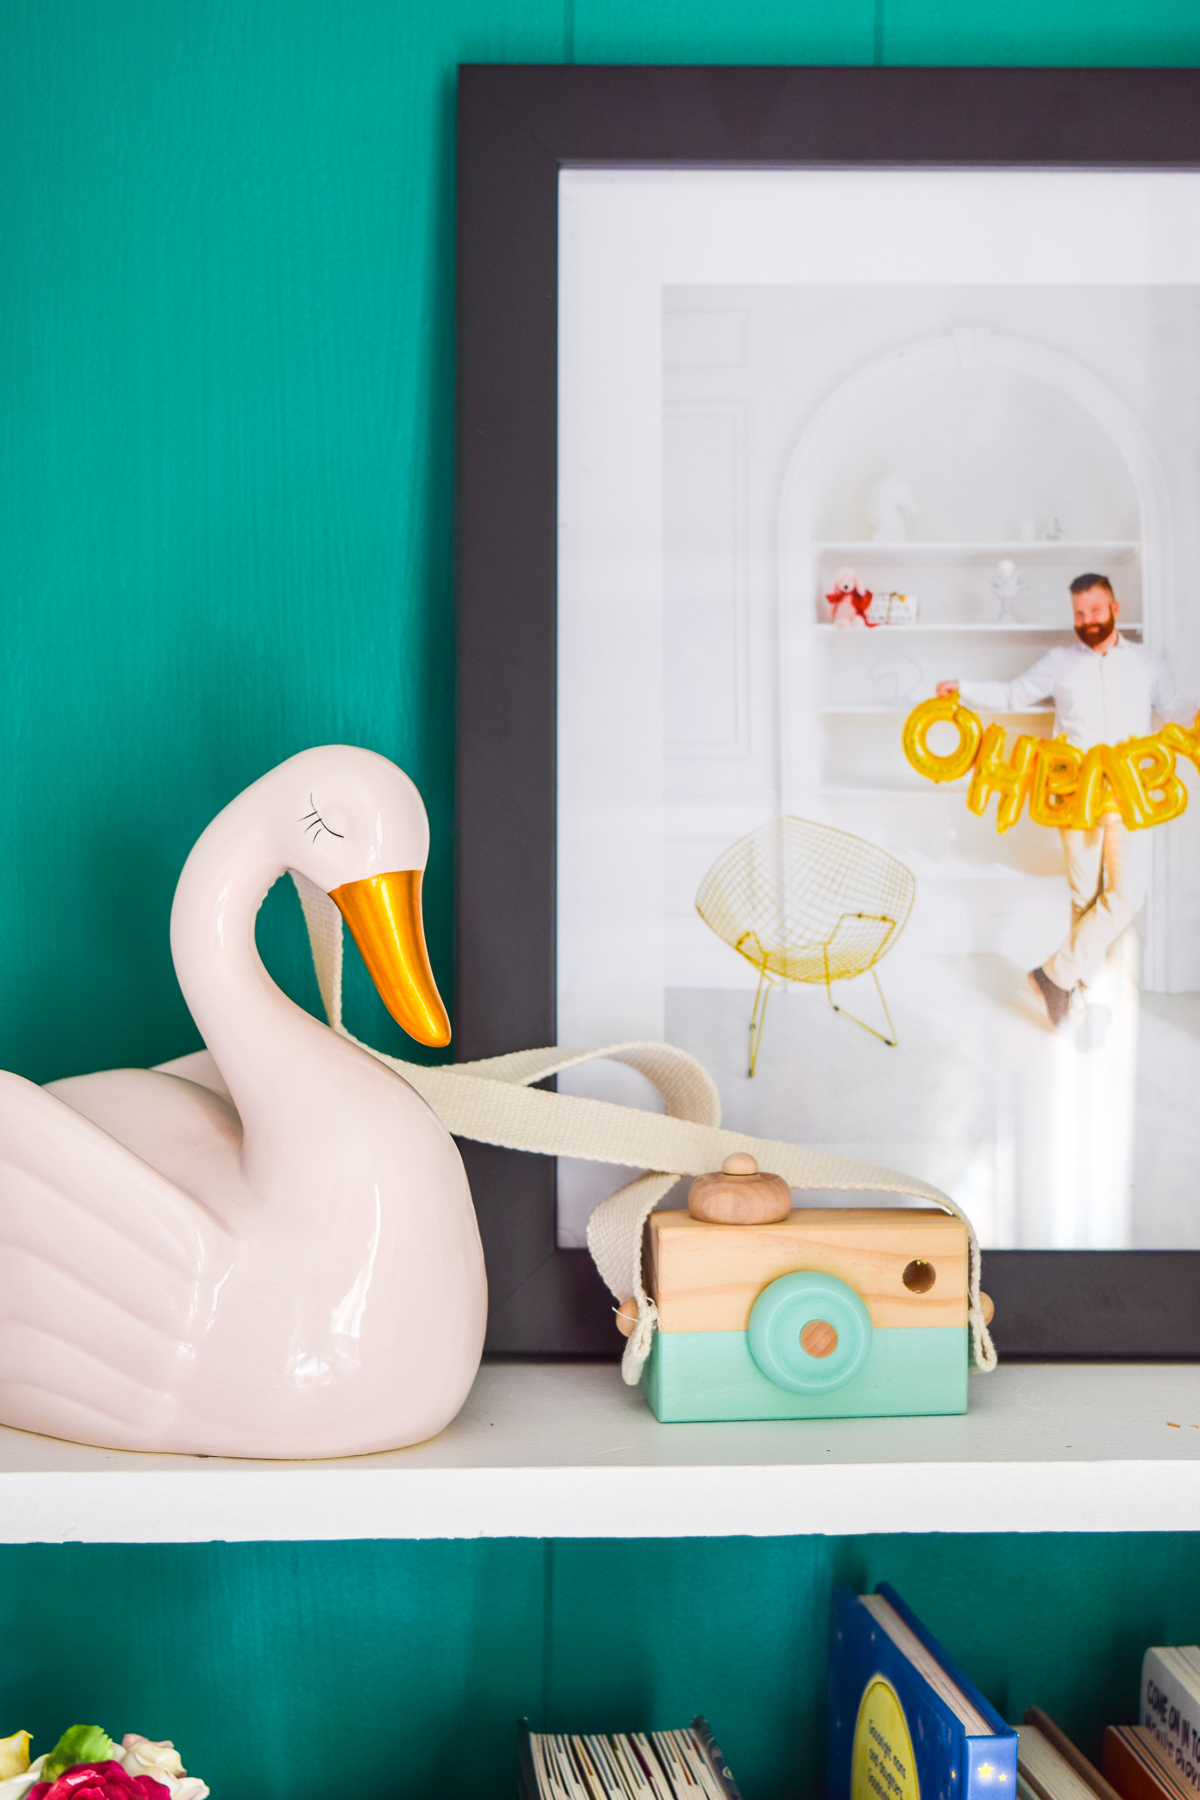 Nursery photo decor ideas don't have to be complicated. Frame a few well chosen photos to mix in with the rest of your decor to create a personal space. Mixbook offers easy to use online printing & framing services, come see how I used them in our Nursery.